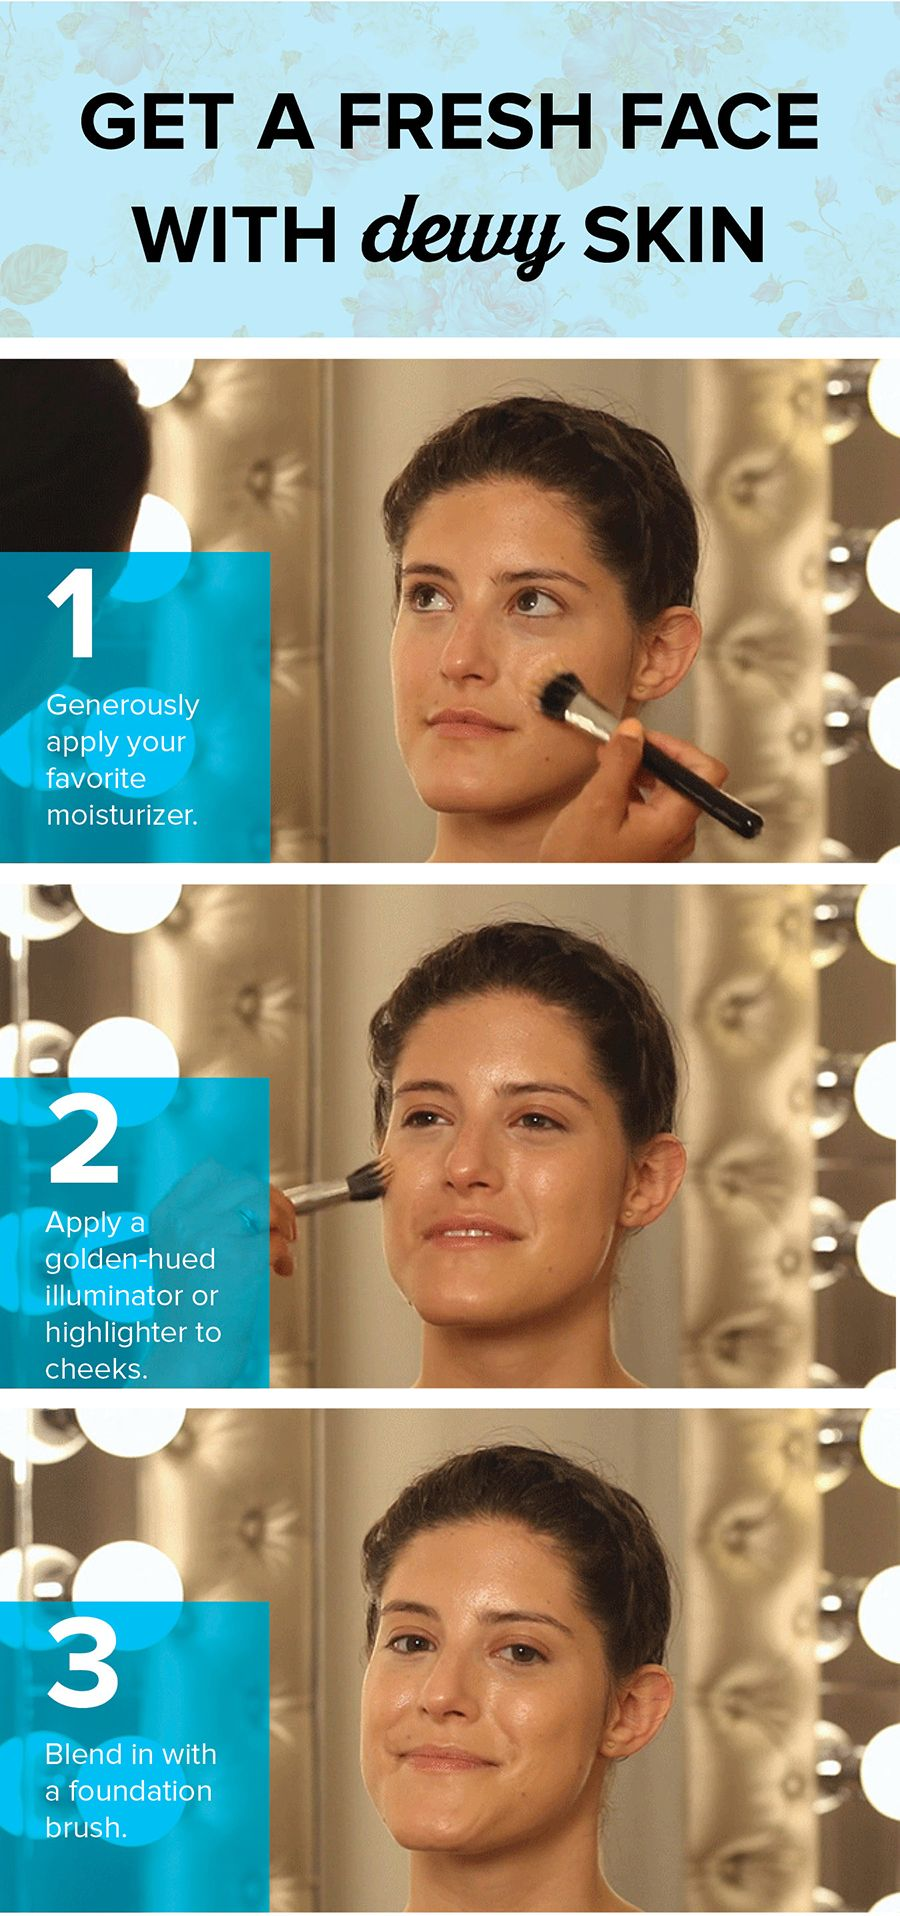 3 simple steps to an instantly younger-looking face